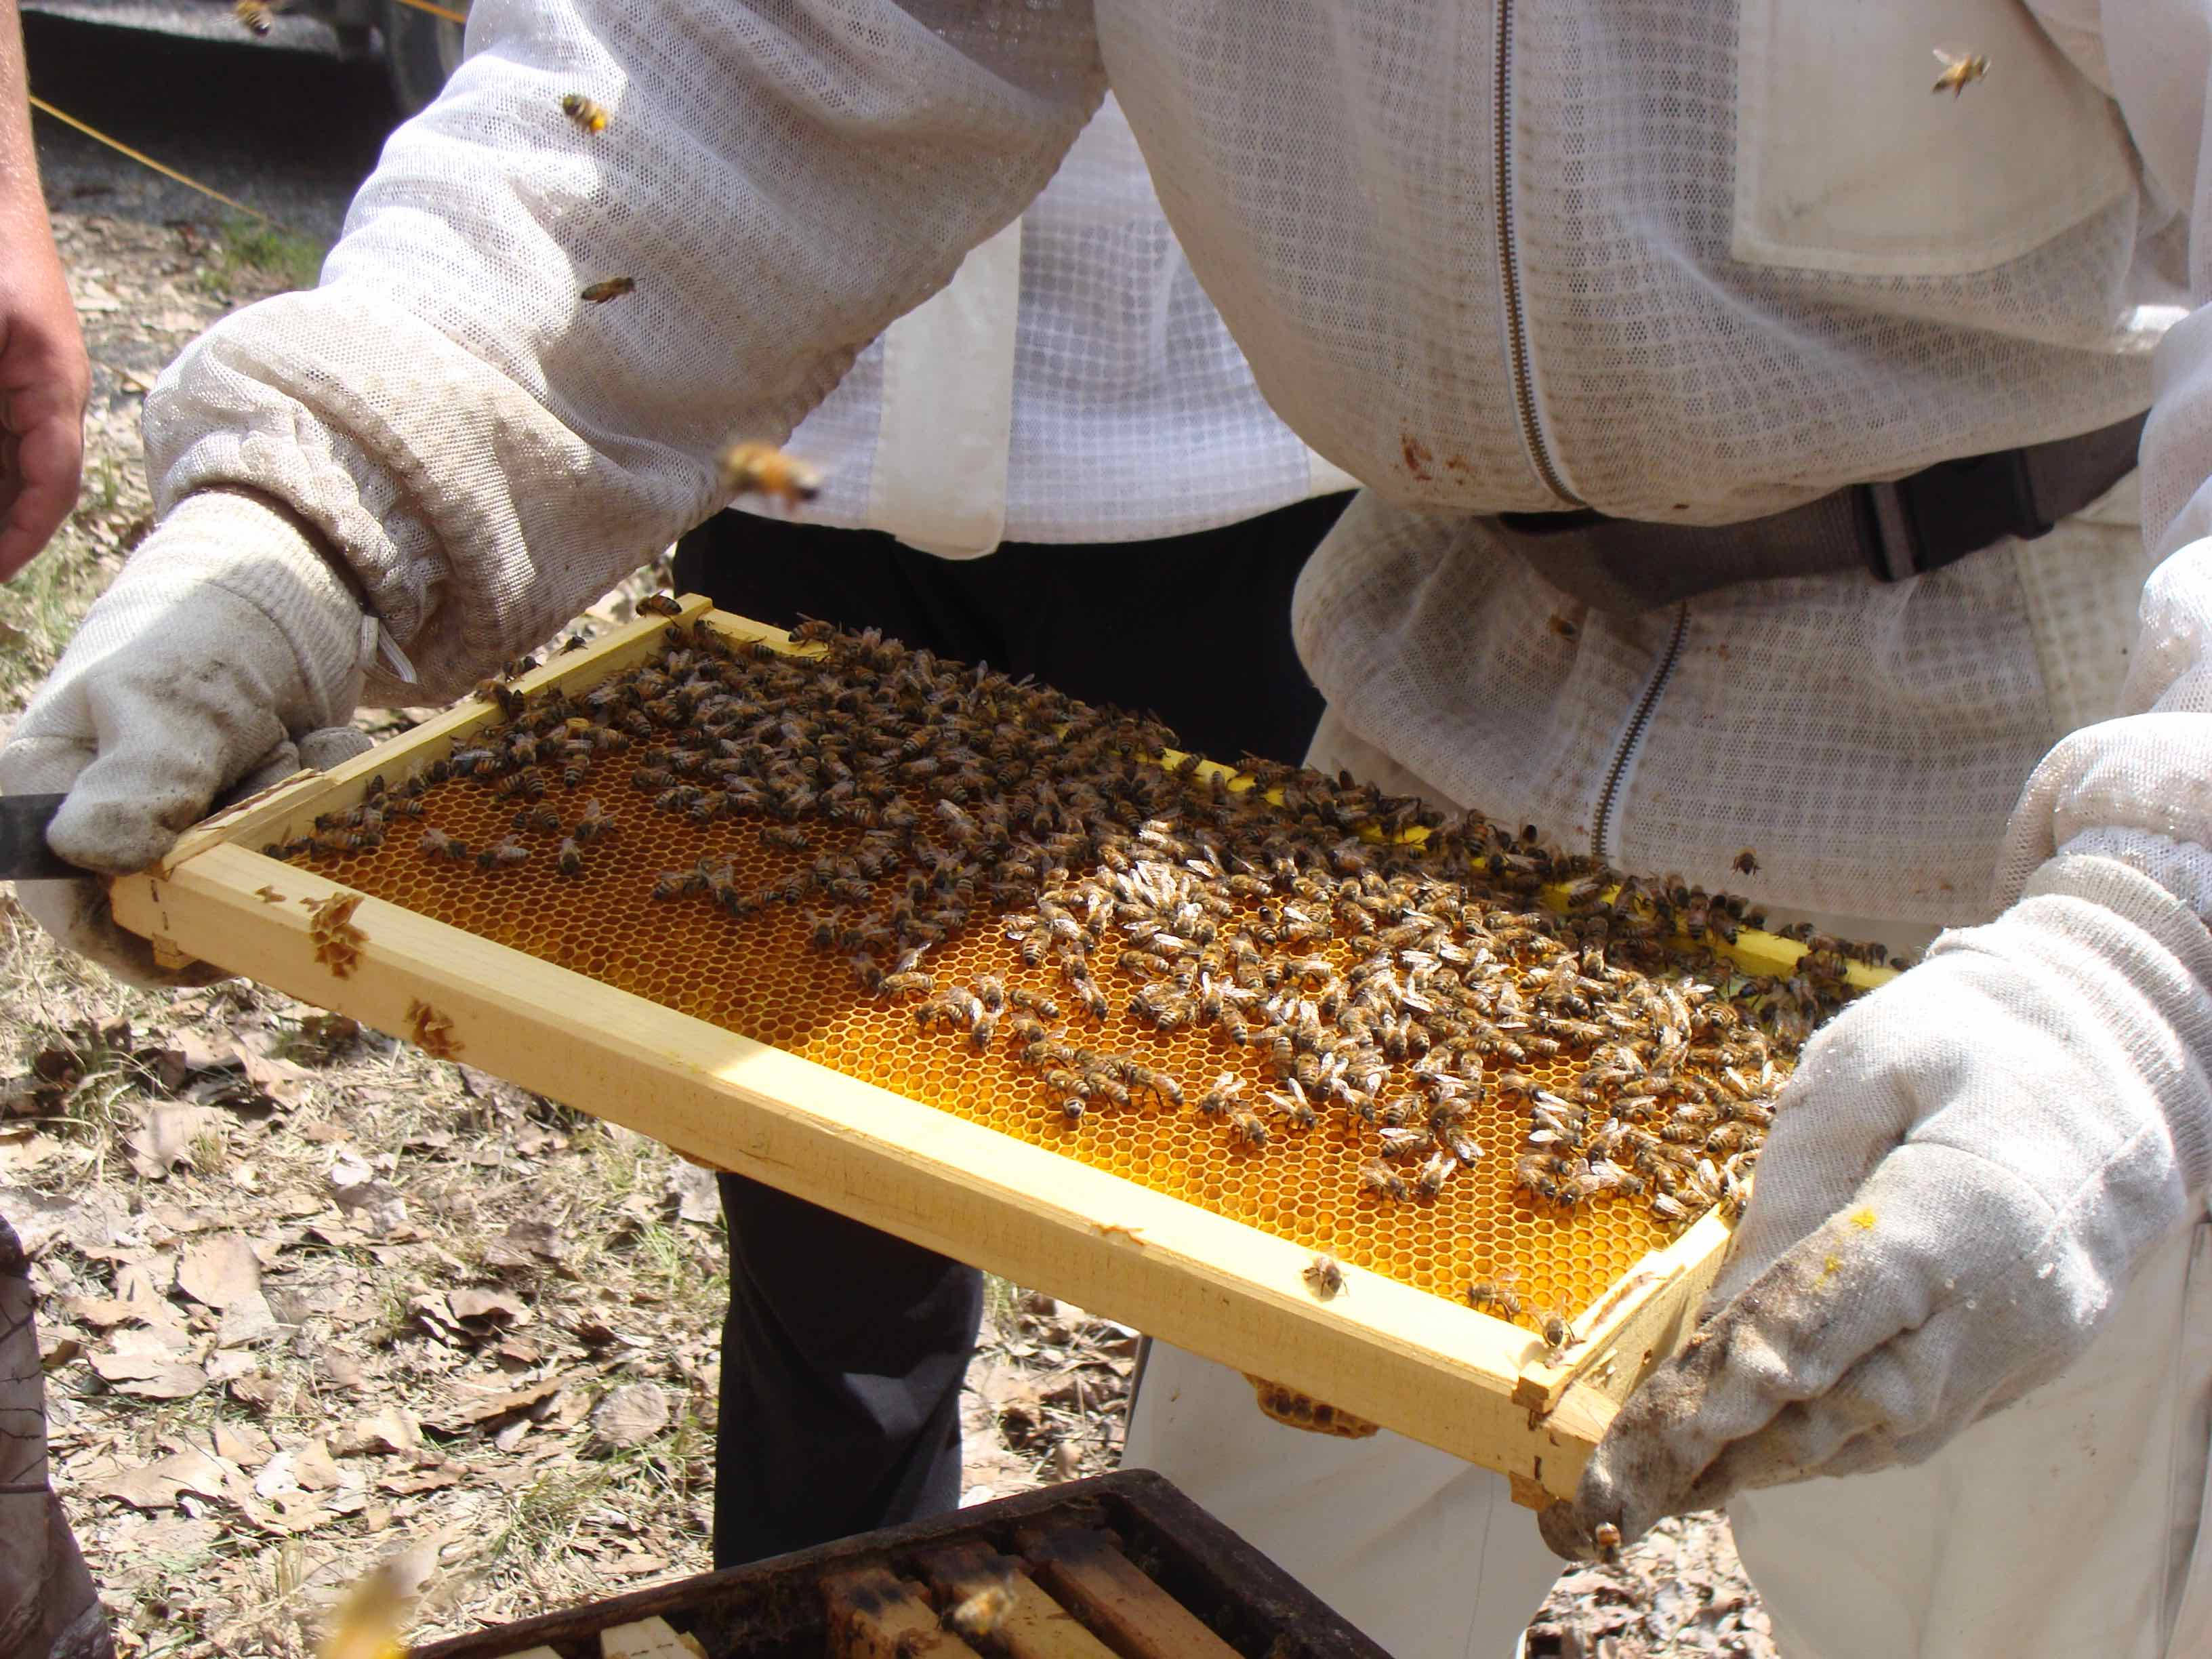 look at the bees